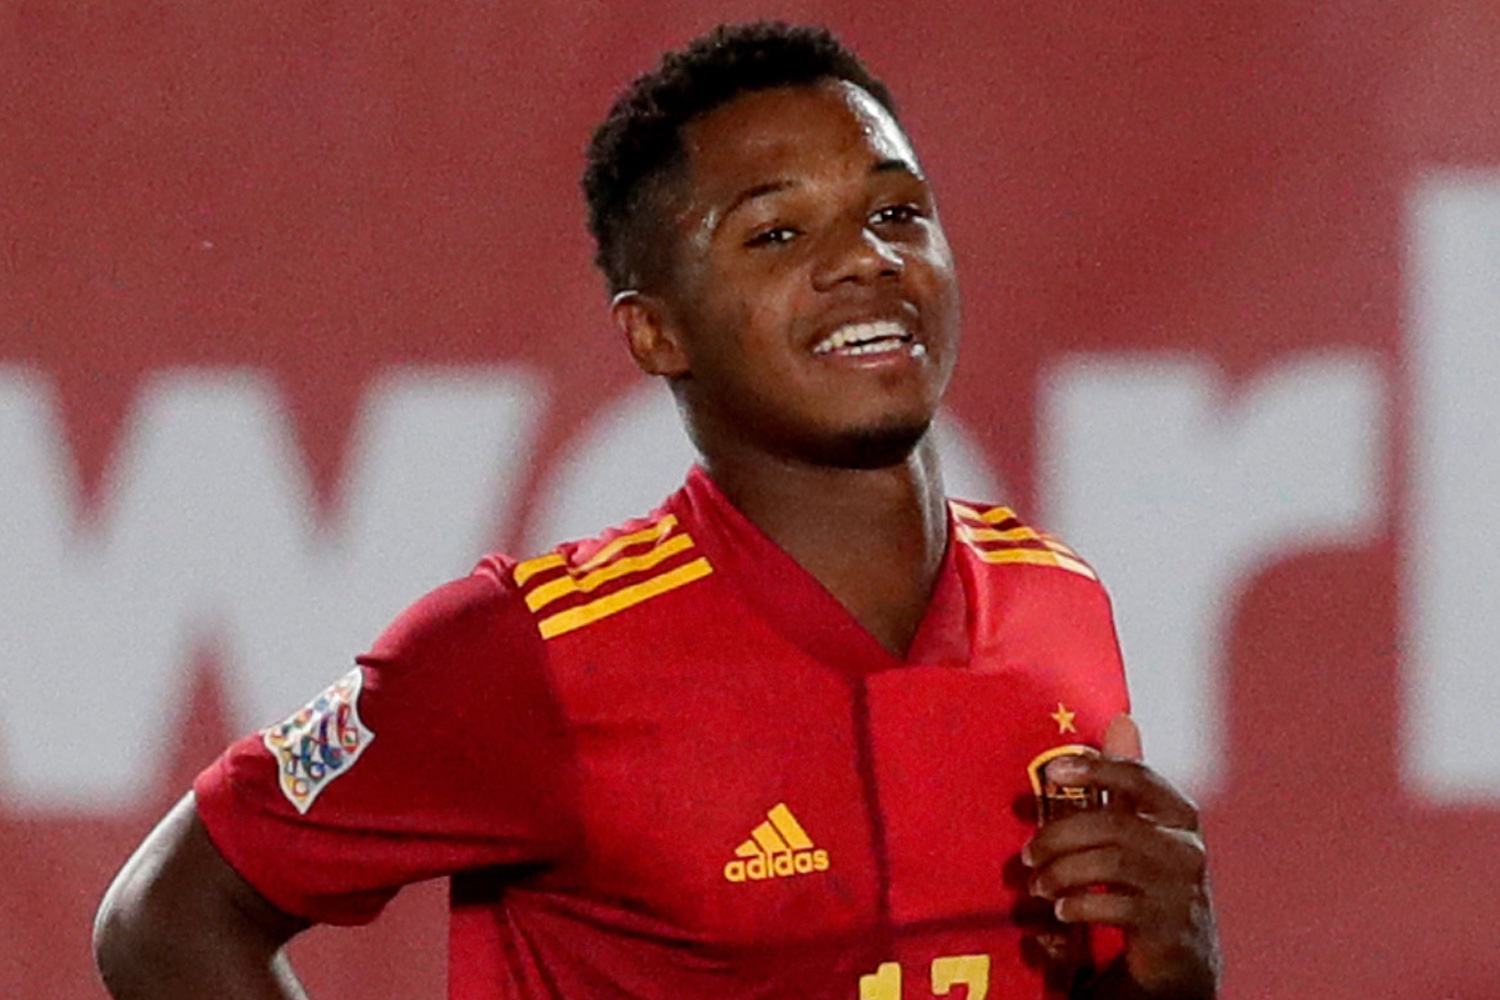 Barcelona starlet Ansu Fati becomes Spain's youngest goalscorer with strike vs Ukraine in Nations League t thumbnail